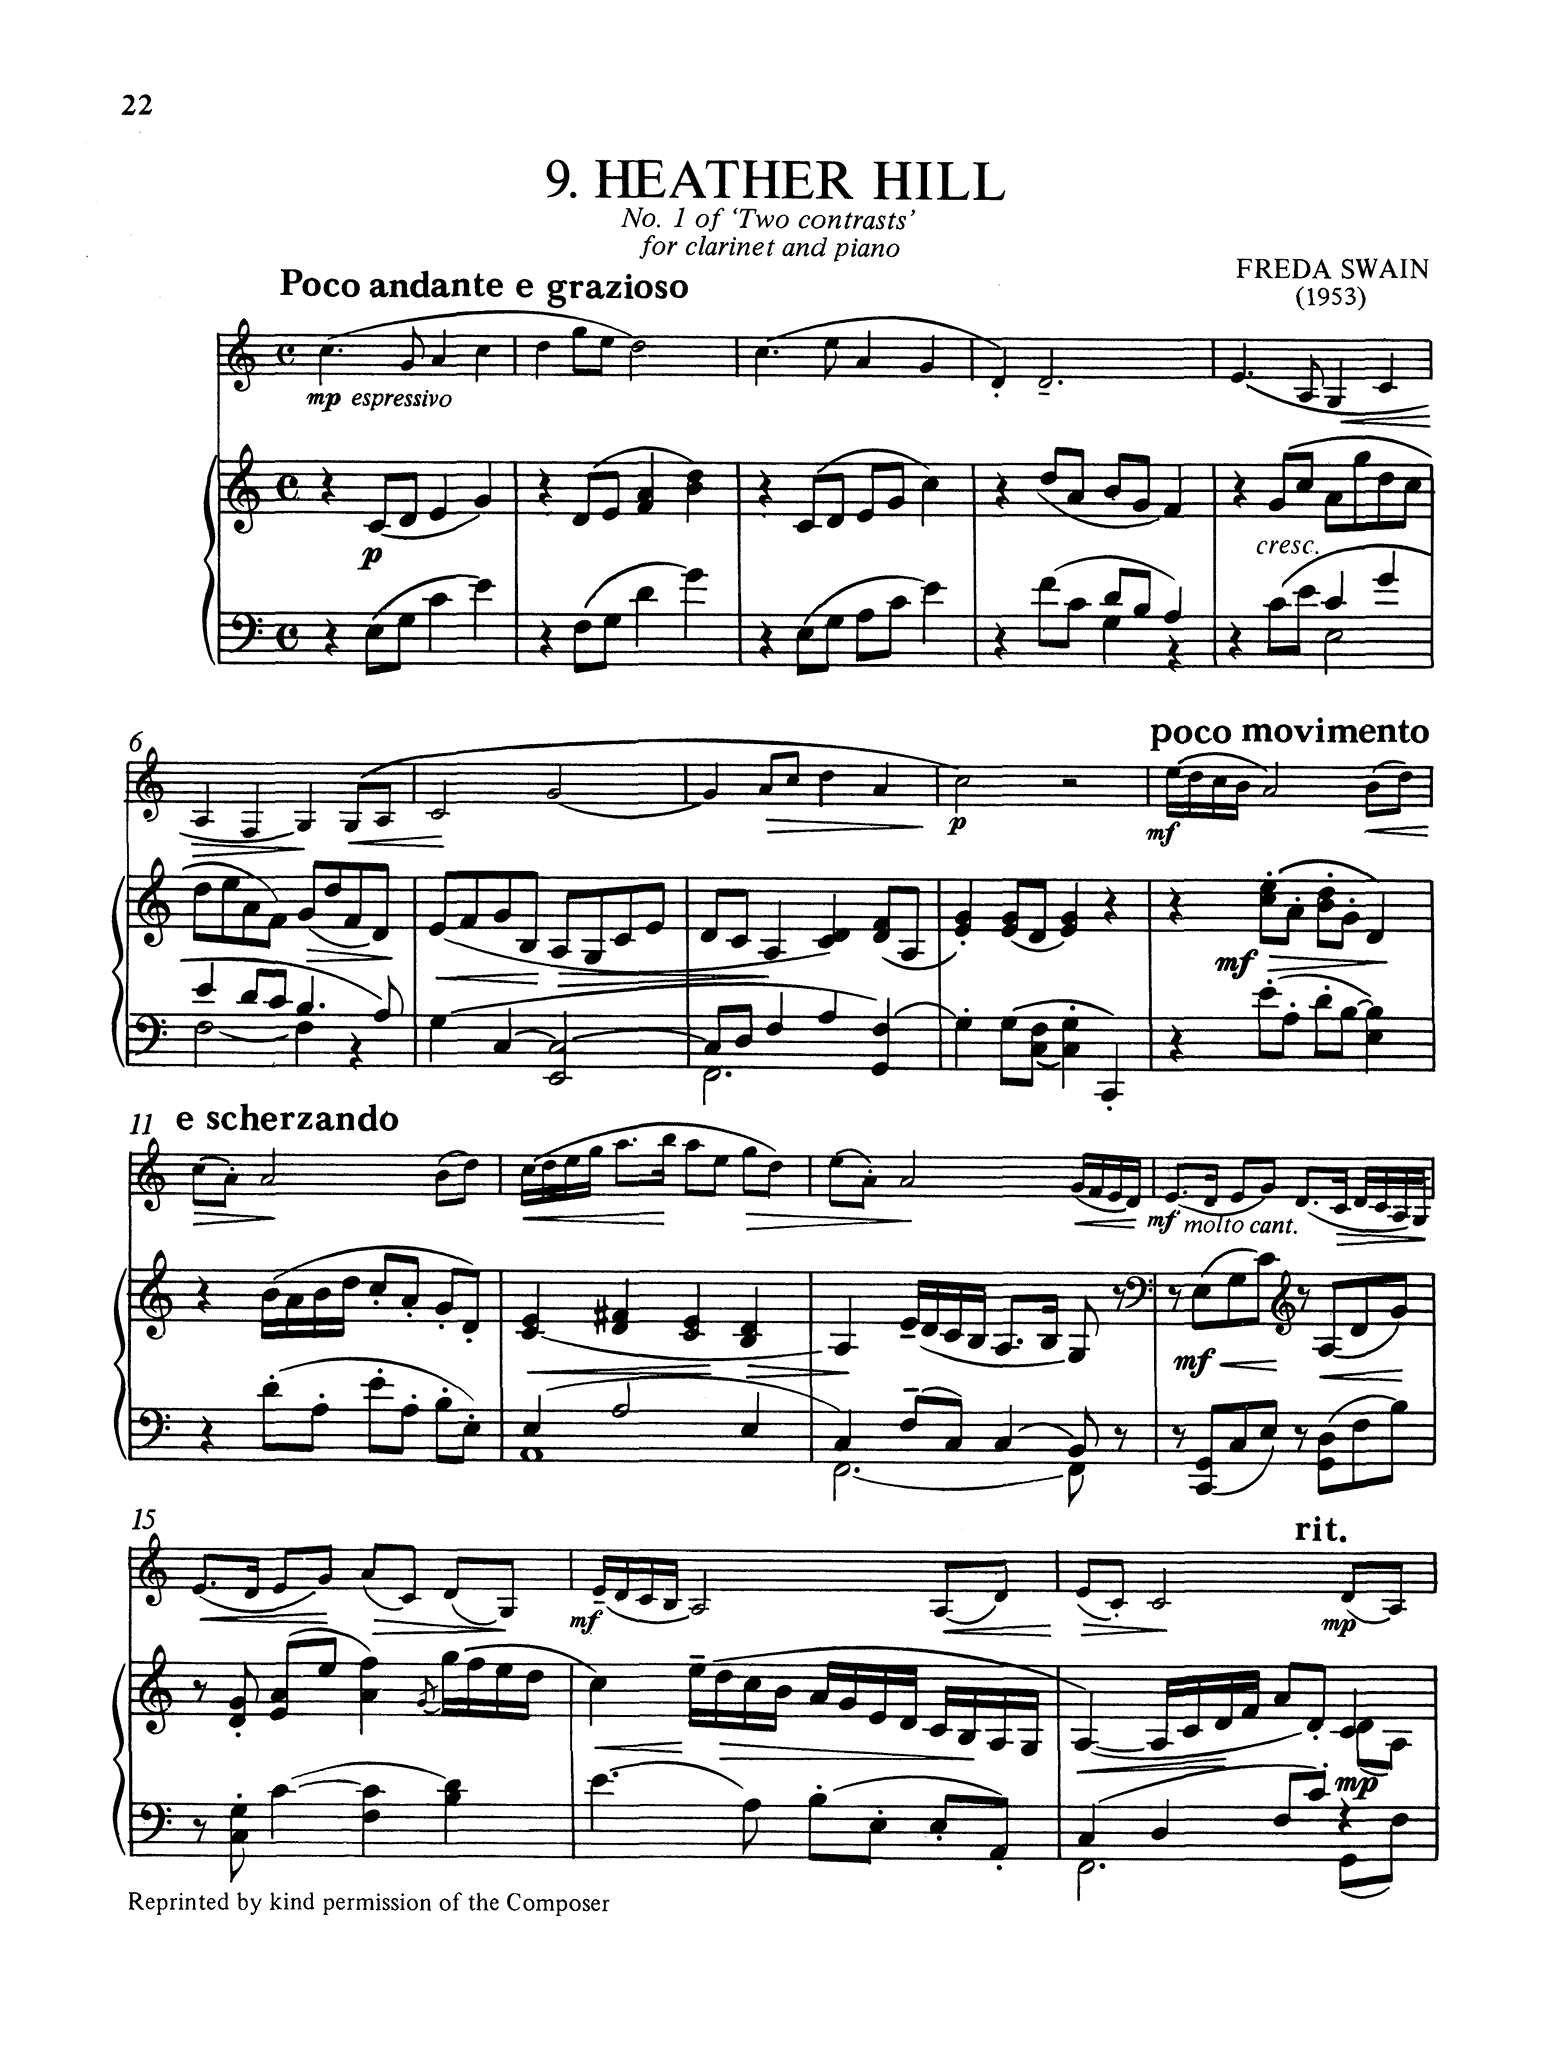 Freda Swain Heather Hill clarinet and piano score